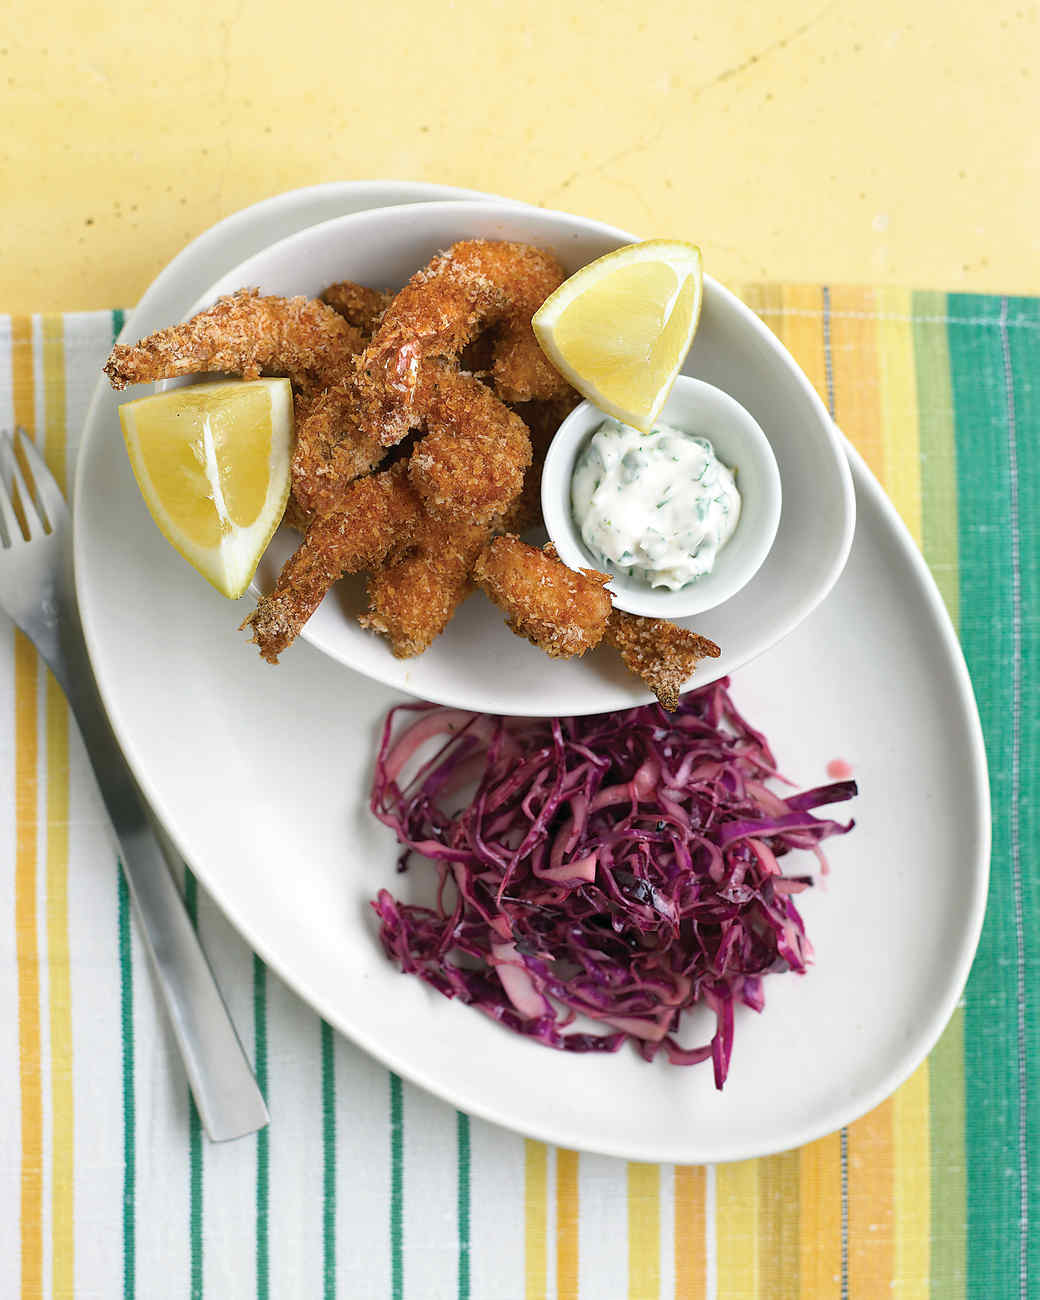 Crispy Shrimp with Tartar Sauce and Red-Cabbage Slaw